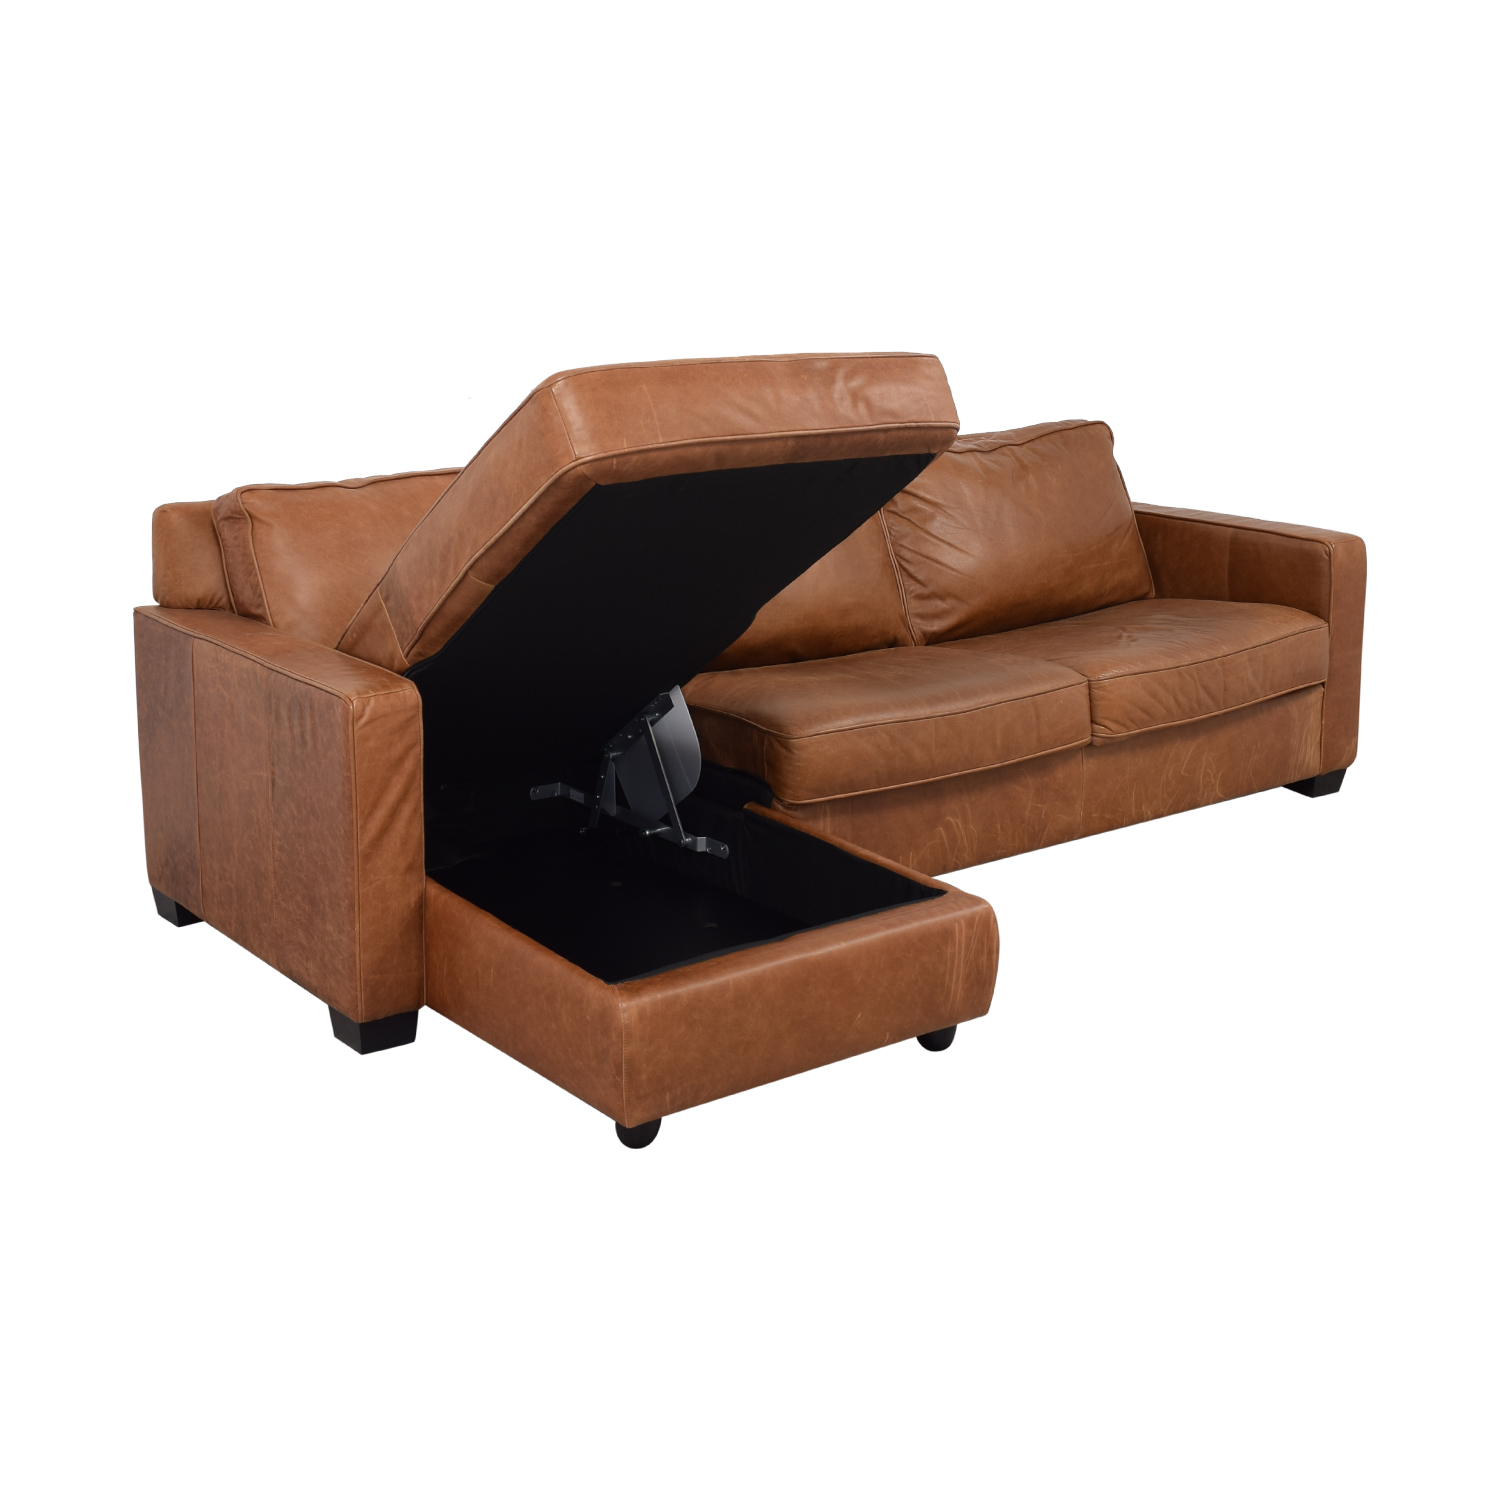 56 Off West Elm West Elm Henry Leather Full Sleeper